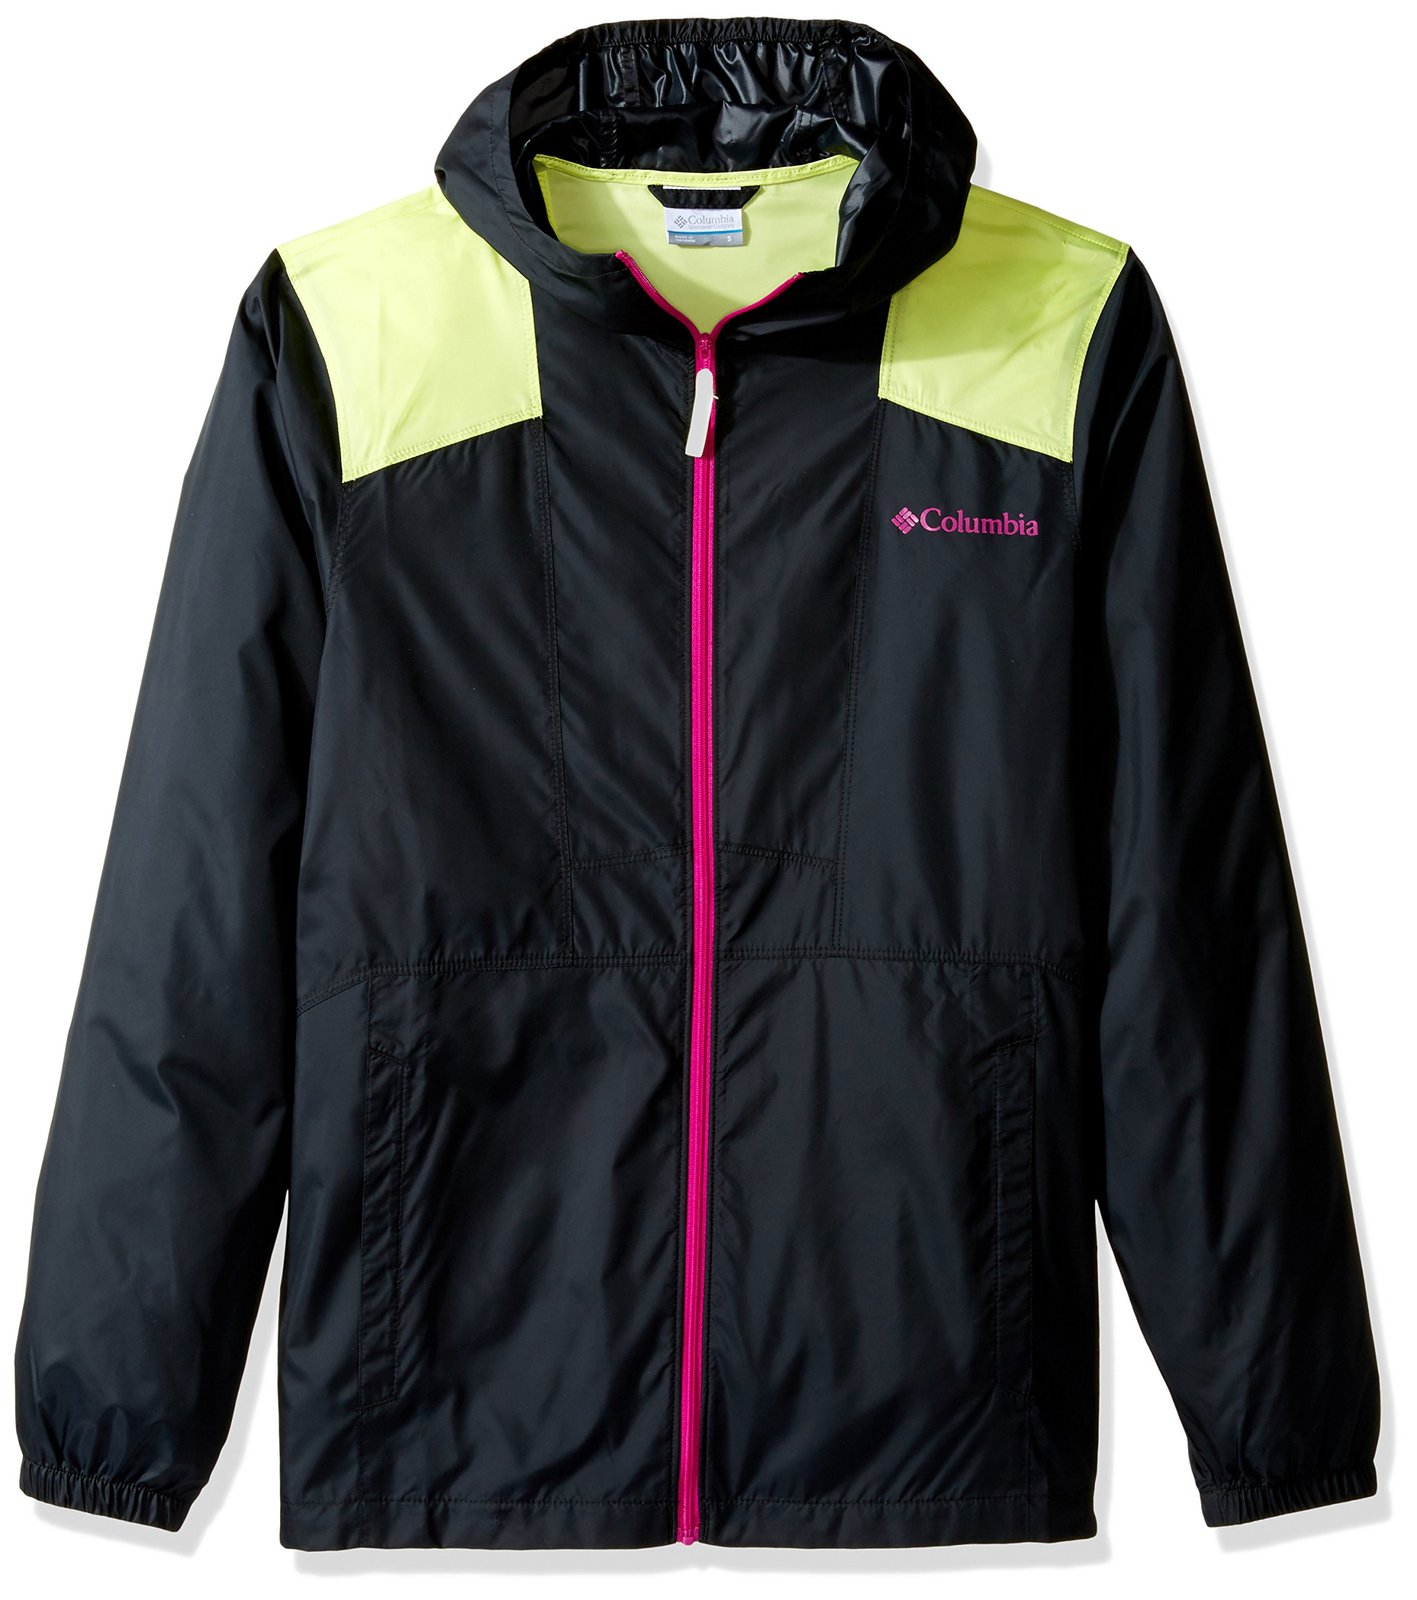 Columbia Men's Flashback Windbreaker, Black, Neon Light, Medium